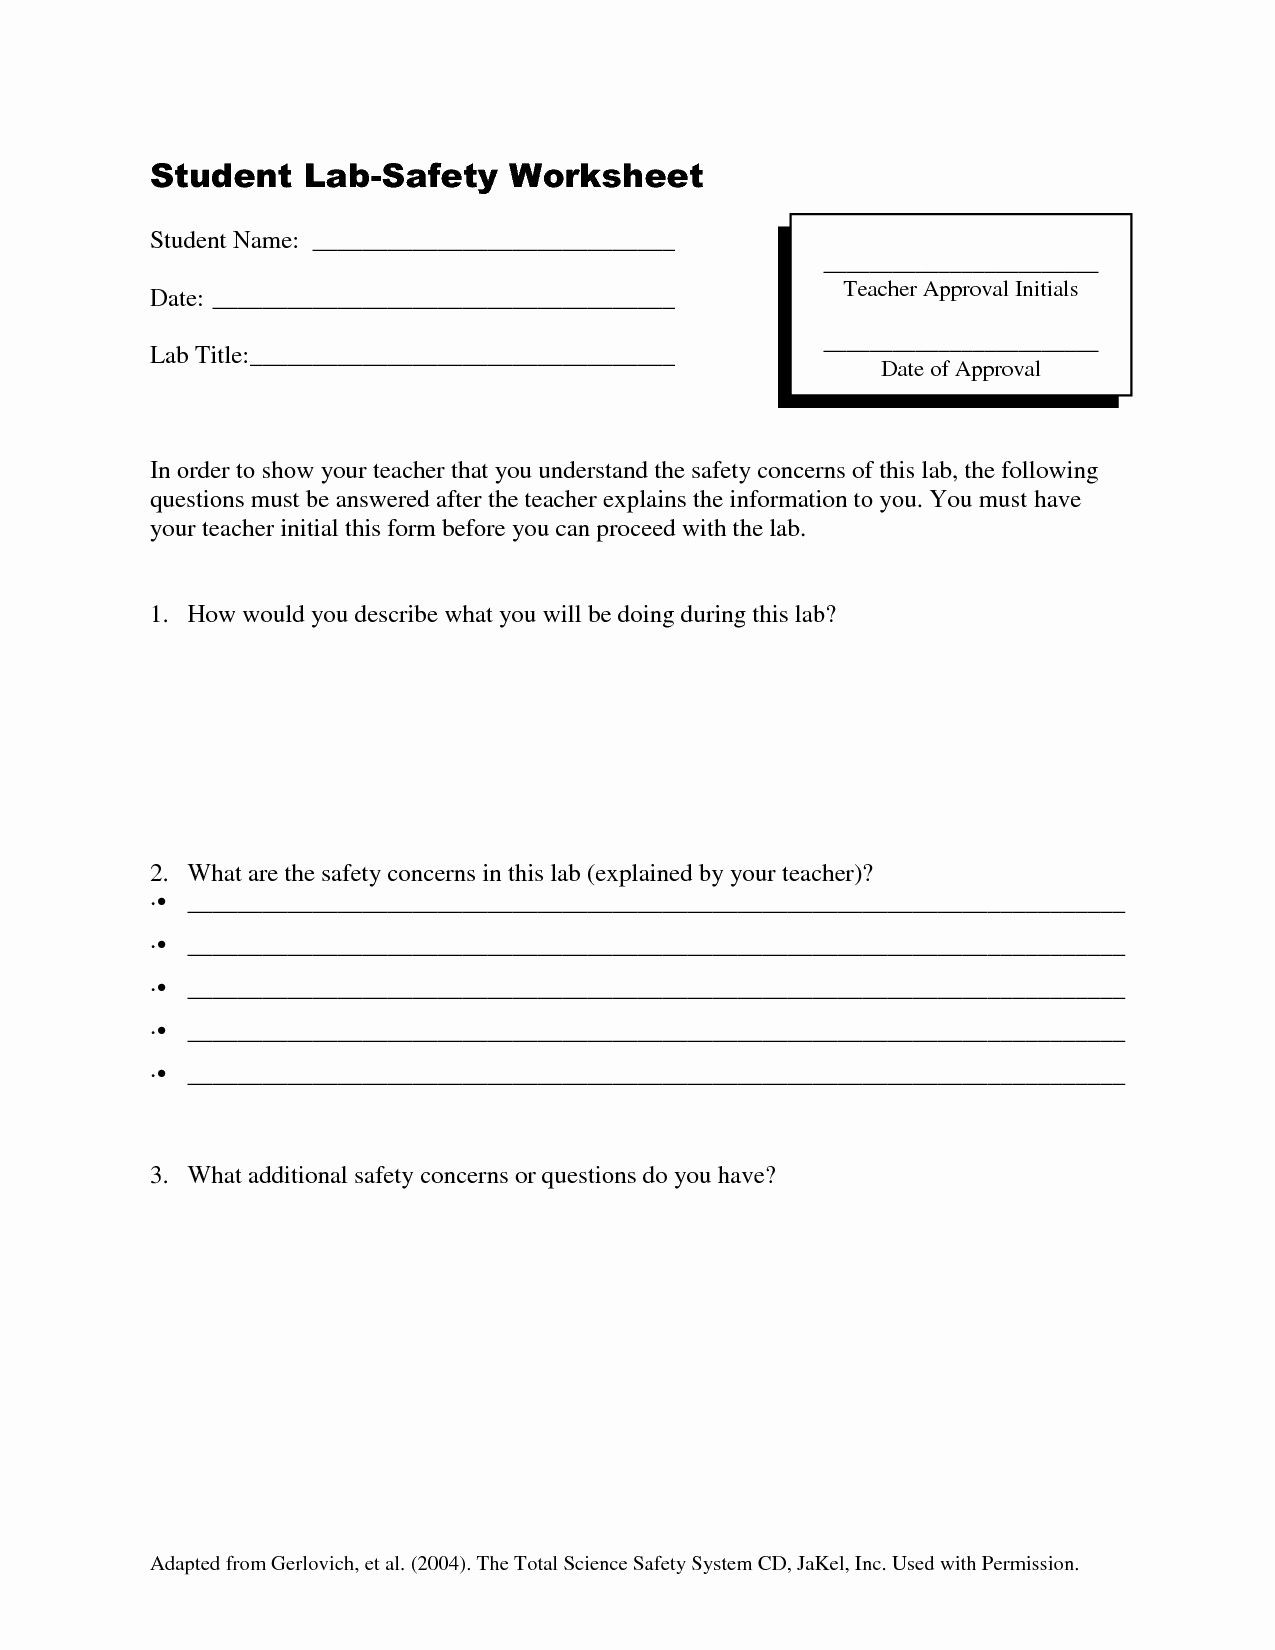 Lab Safety Worksheet Pdf Pin On Customize Design Worksheet Line